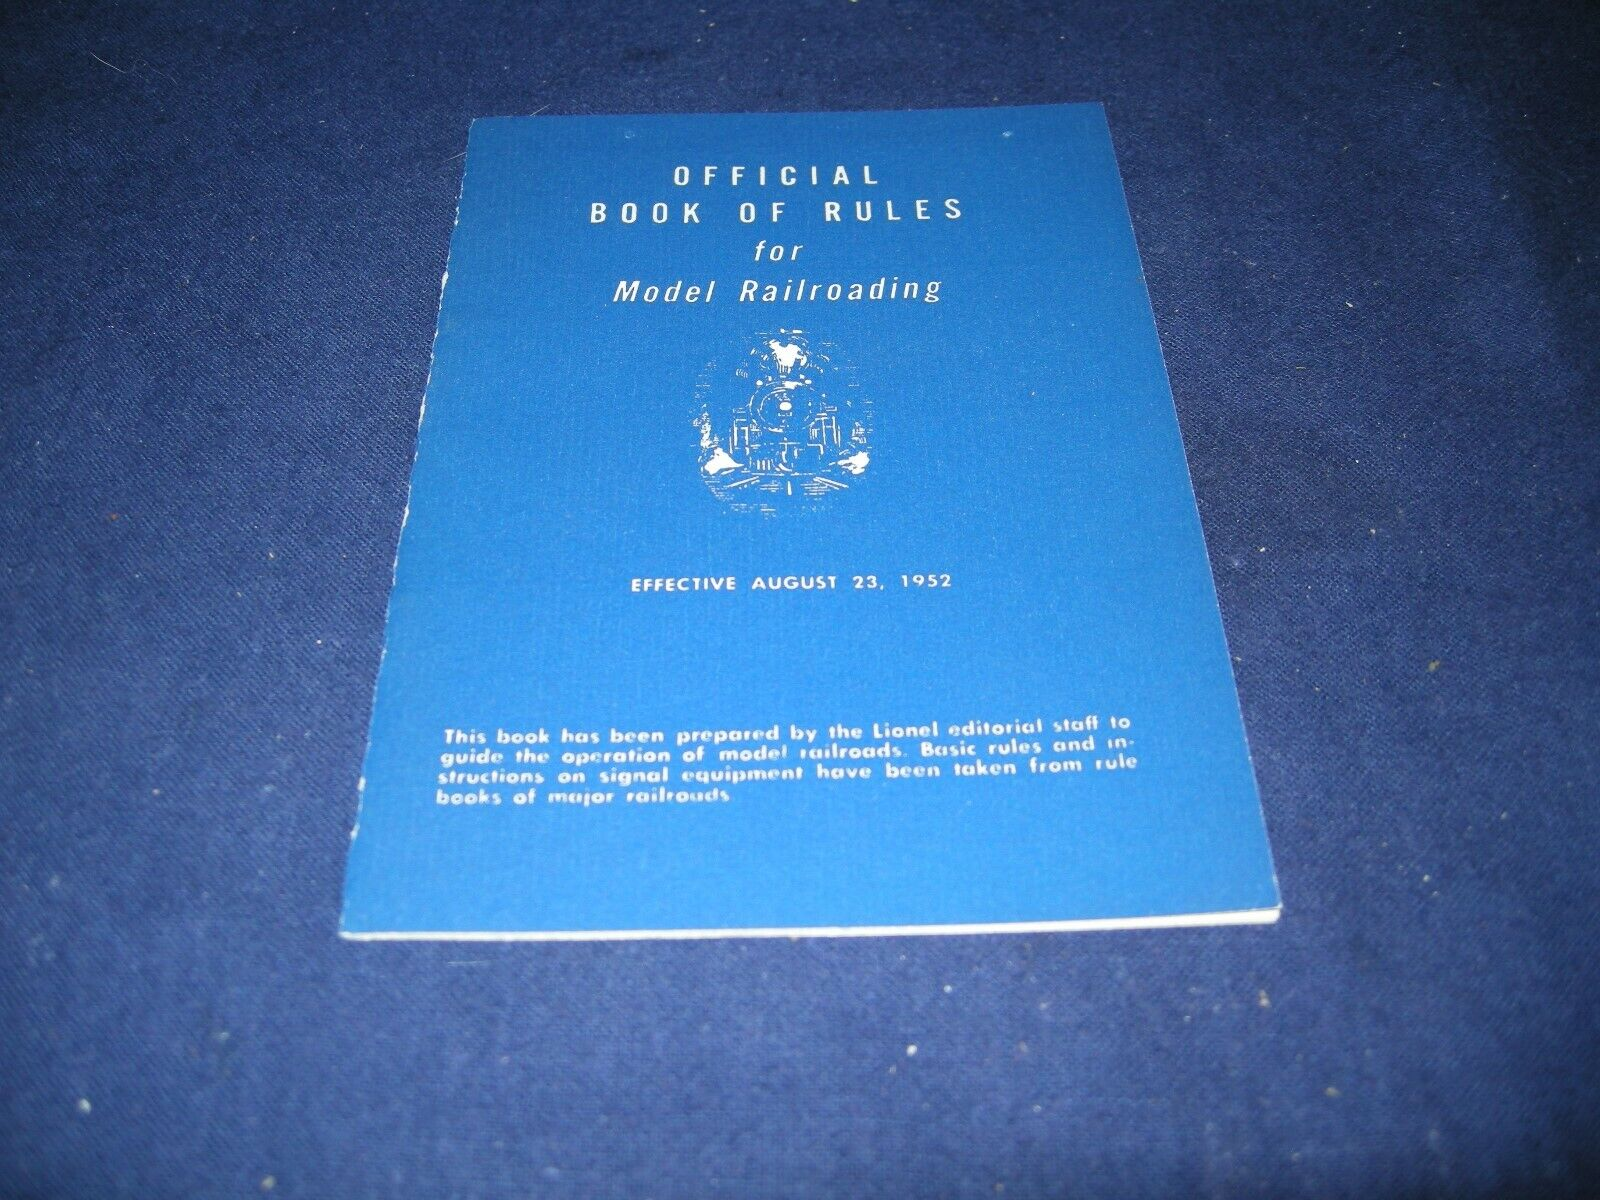 OFFICIAL BOOK OF RULES FOR MODEL RAILROADING AUGUST 23, 1952 NEAR PERFECT